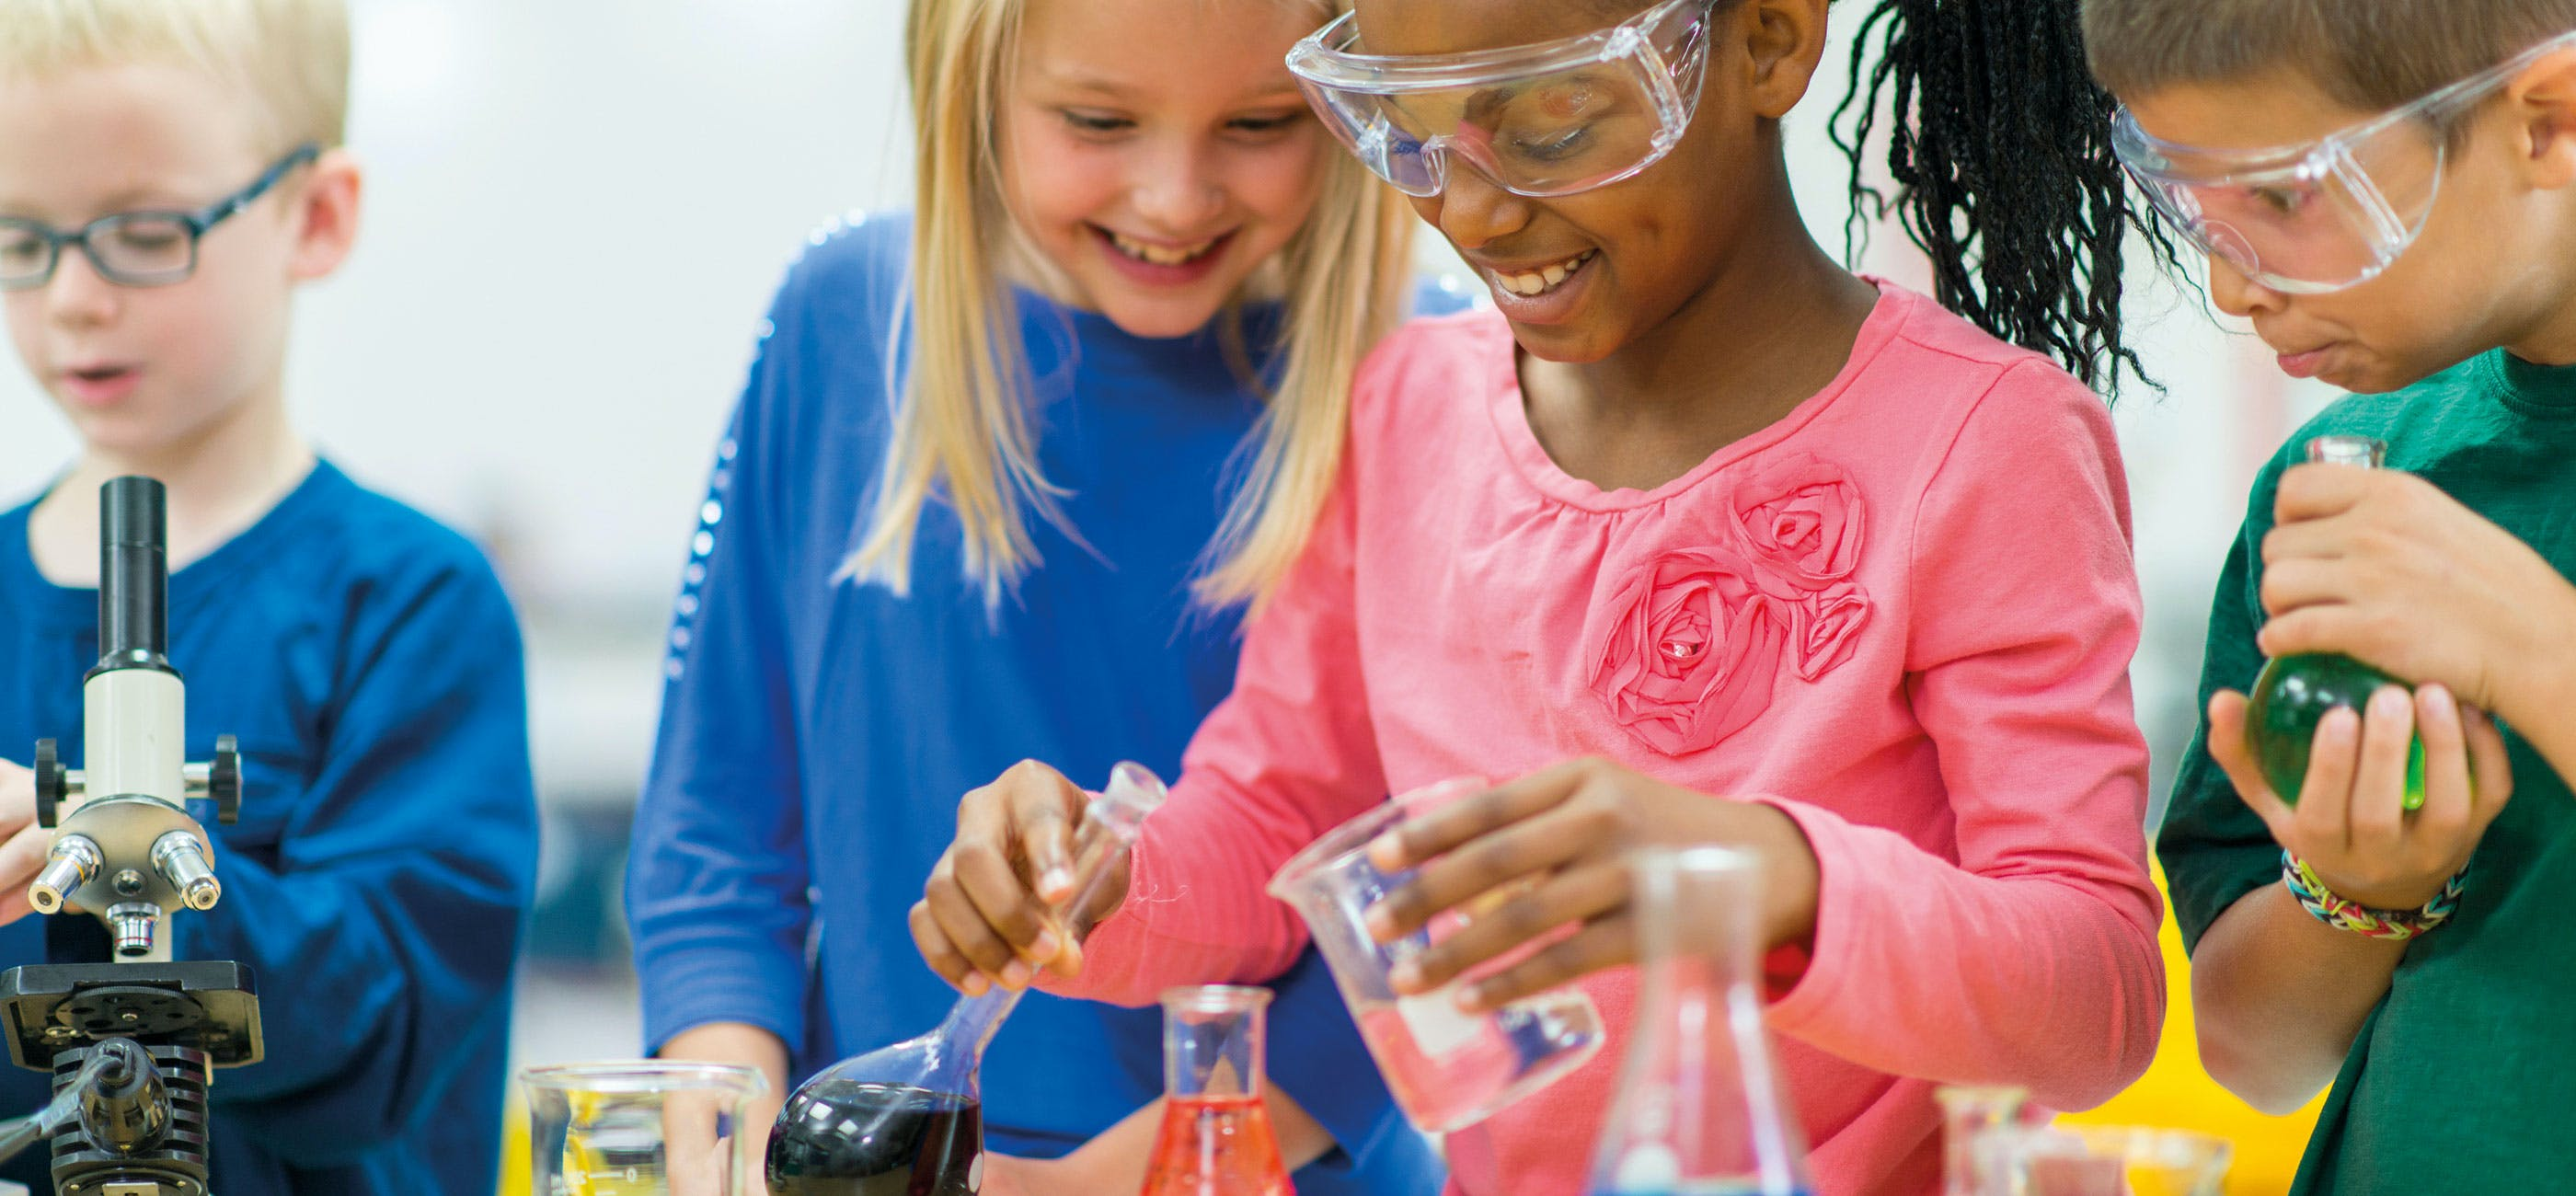 Hands-on science for children